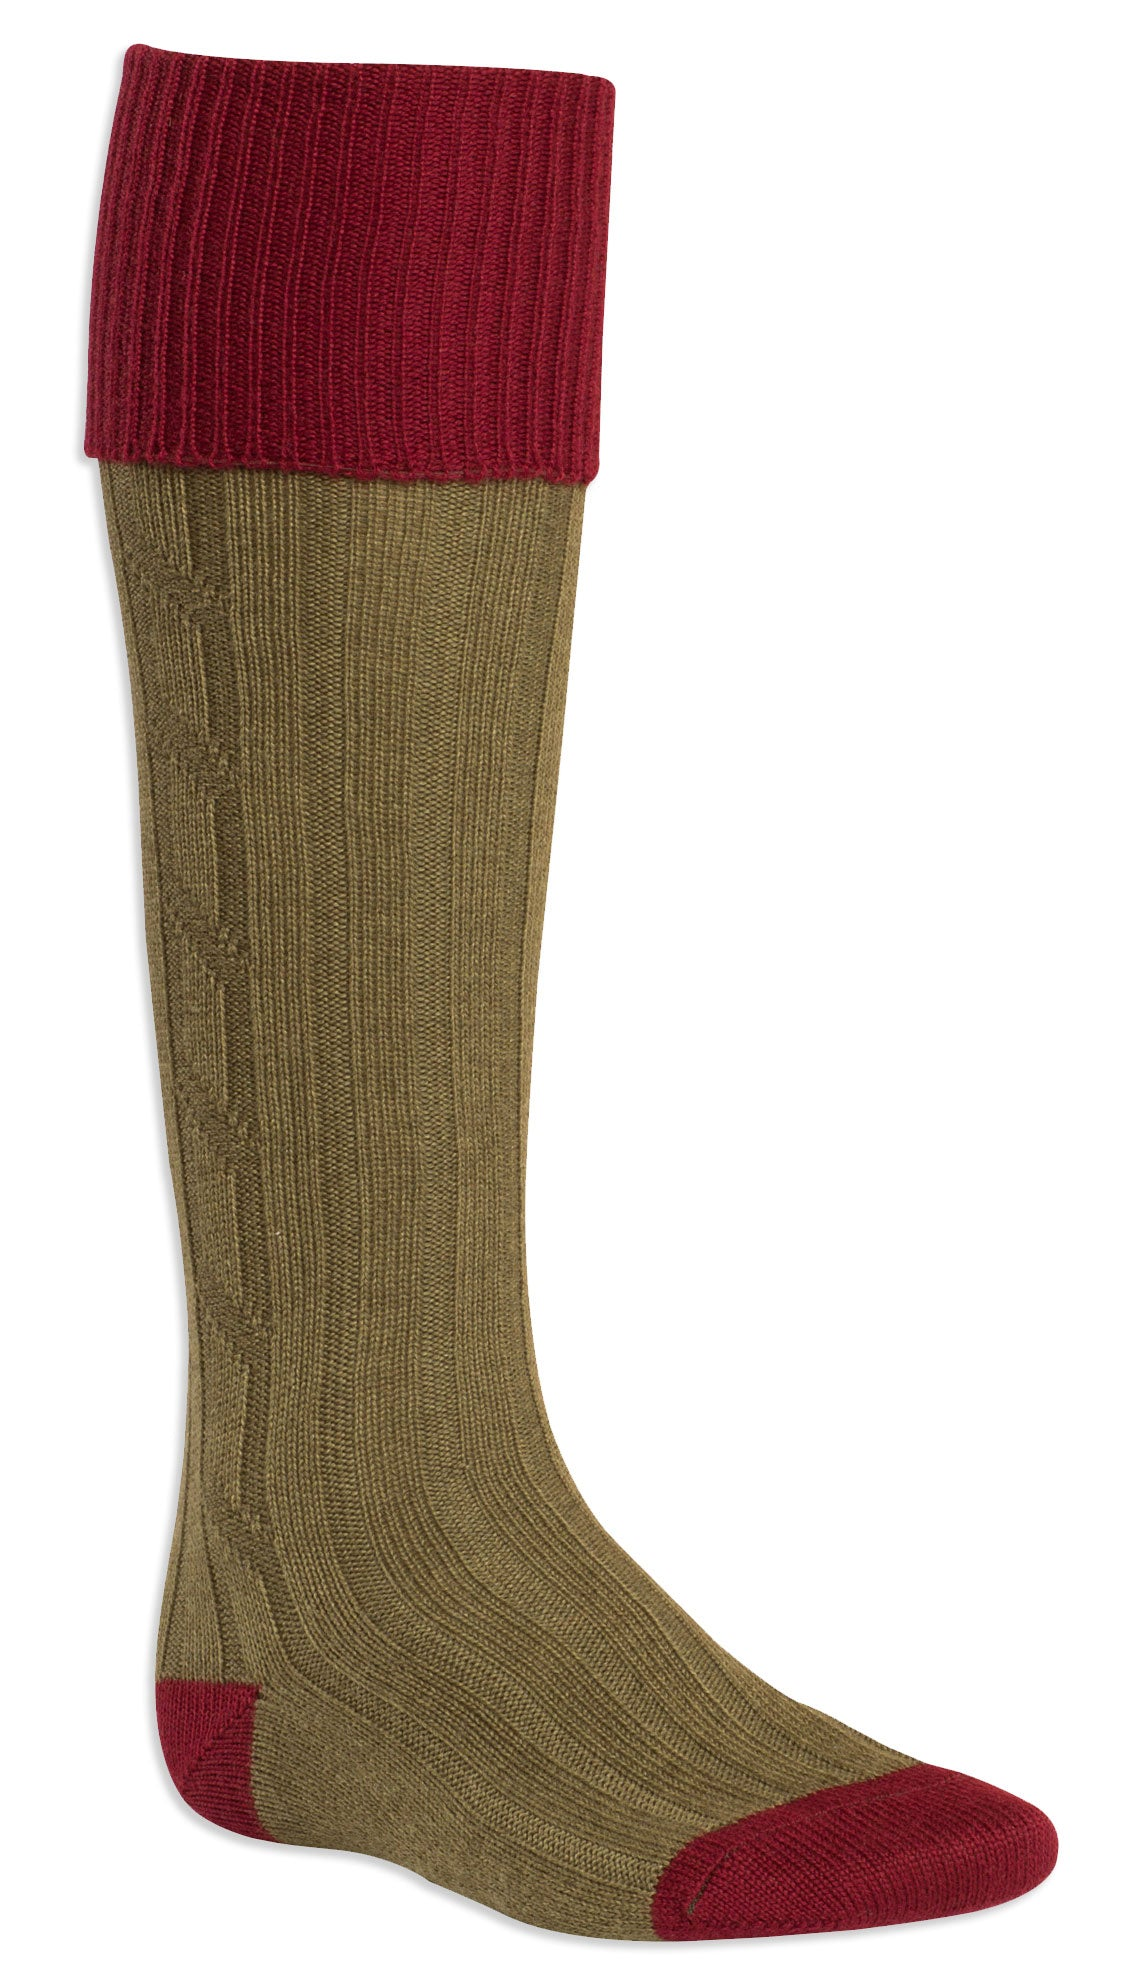 bordeaux and olive Contrast Heel & Toe Shooting Sock by Alan Paine